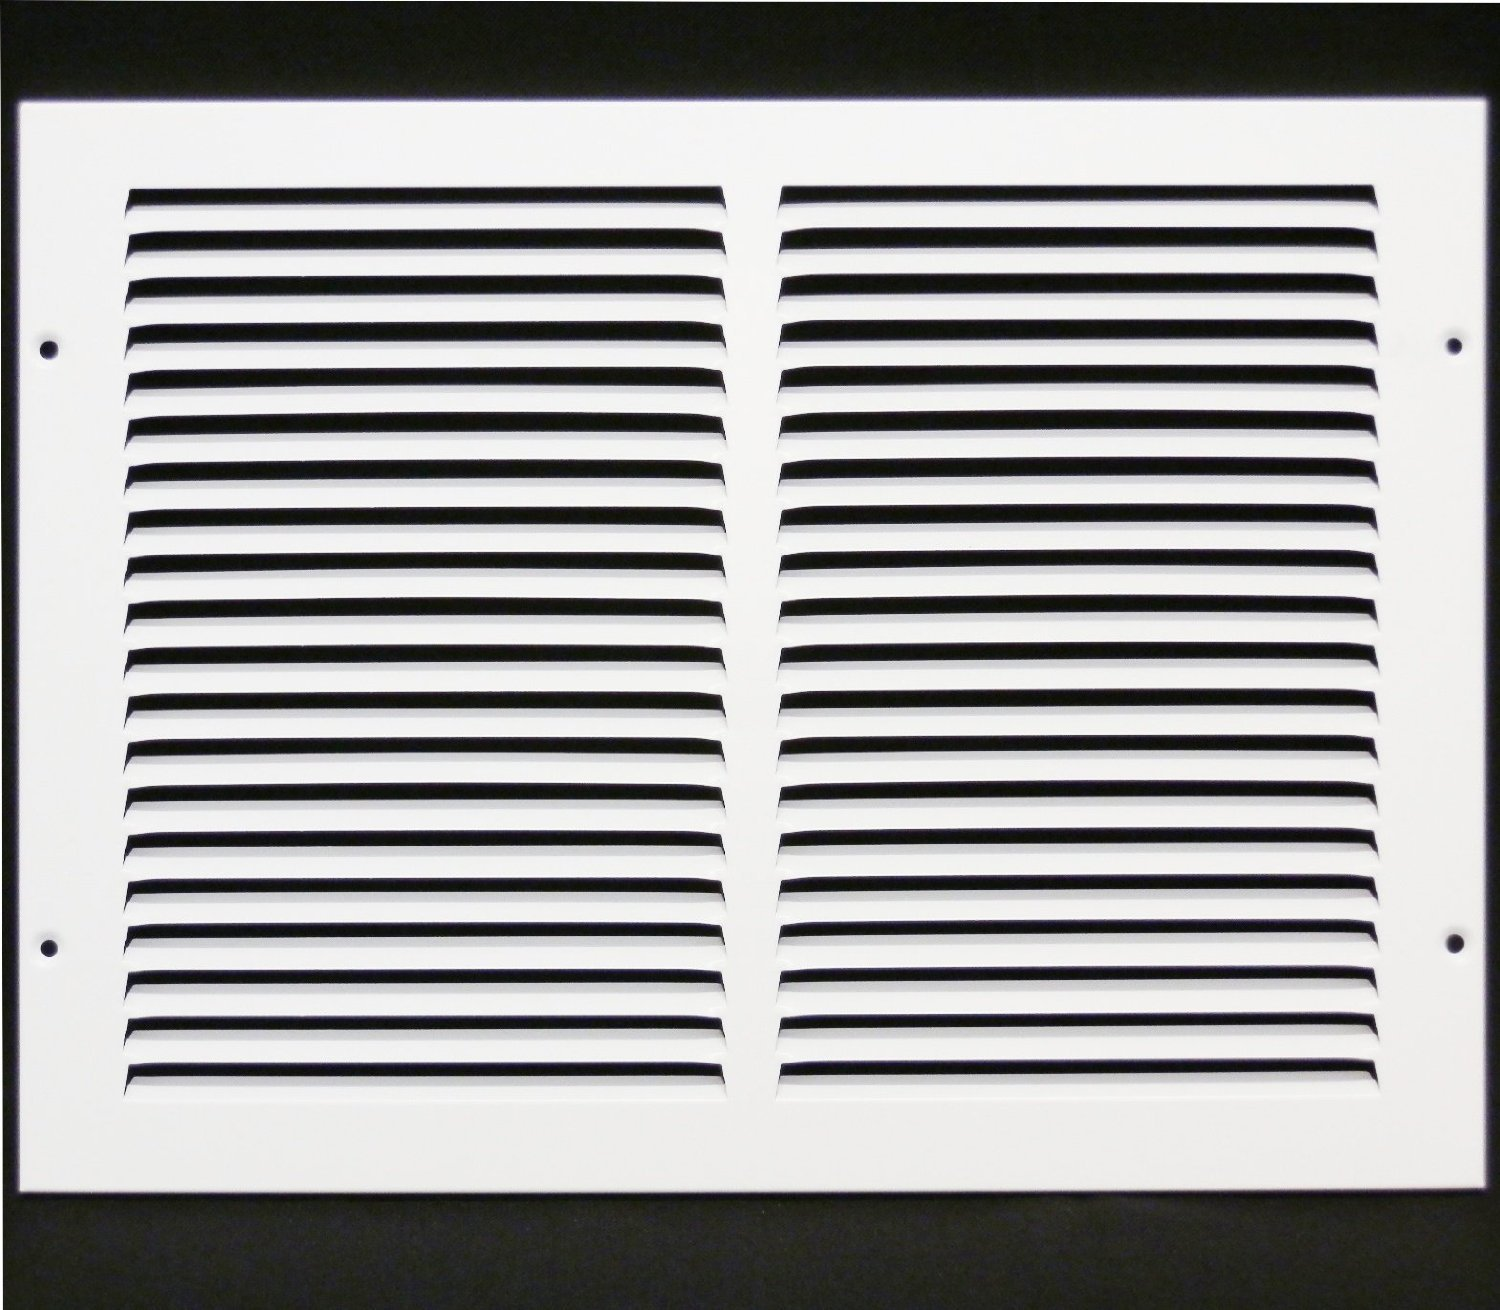 14''w X 10''h Steel Return Air Grilles - Sidewall and Cieling - HVAC DUCT COVER - White [Outer Dimensions: 15.75''w X 11.75''h]